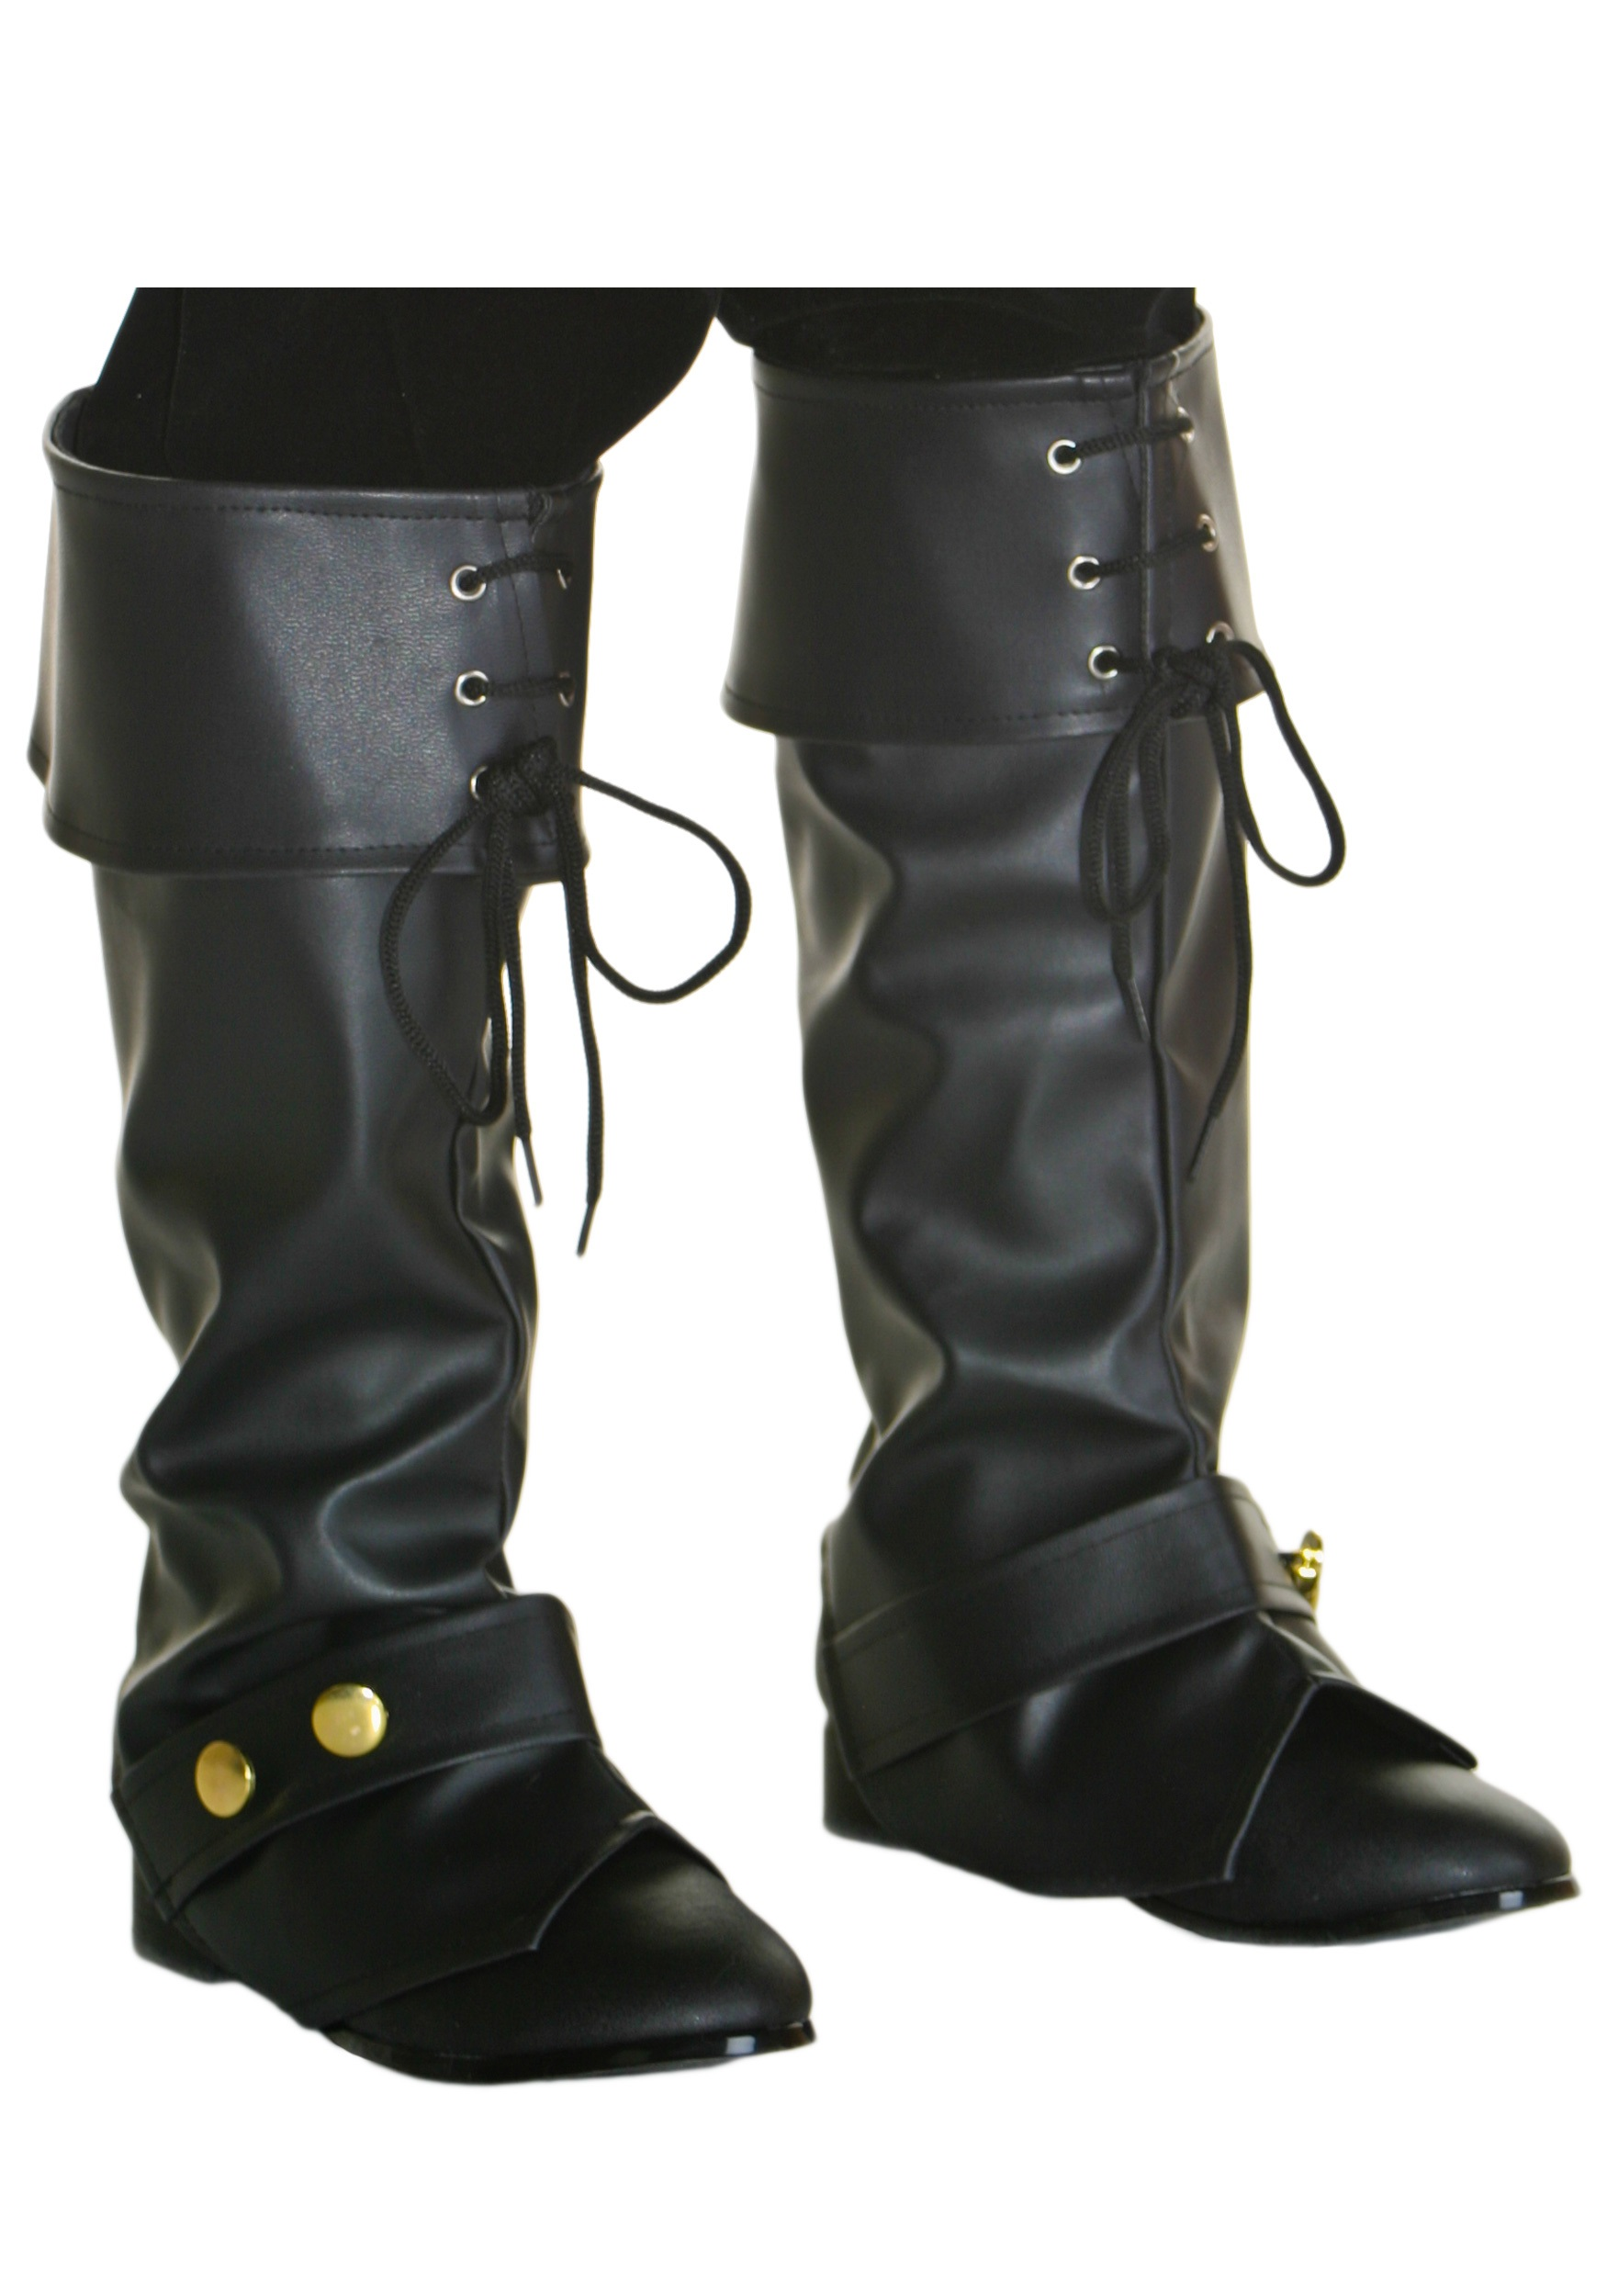 Deluxe Pirate Boot Tops for Kids